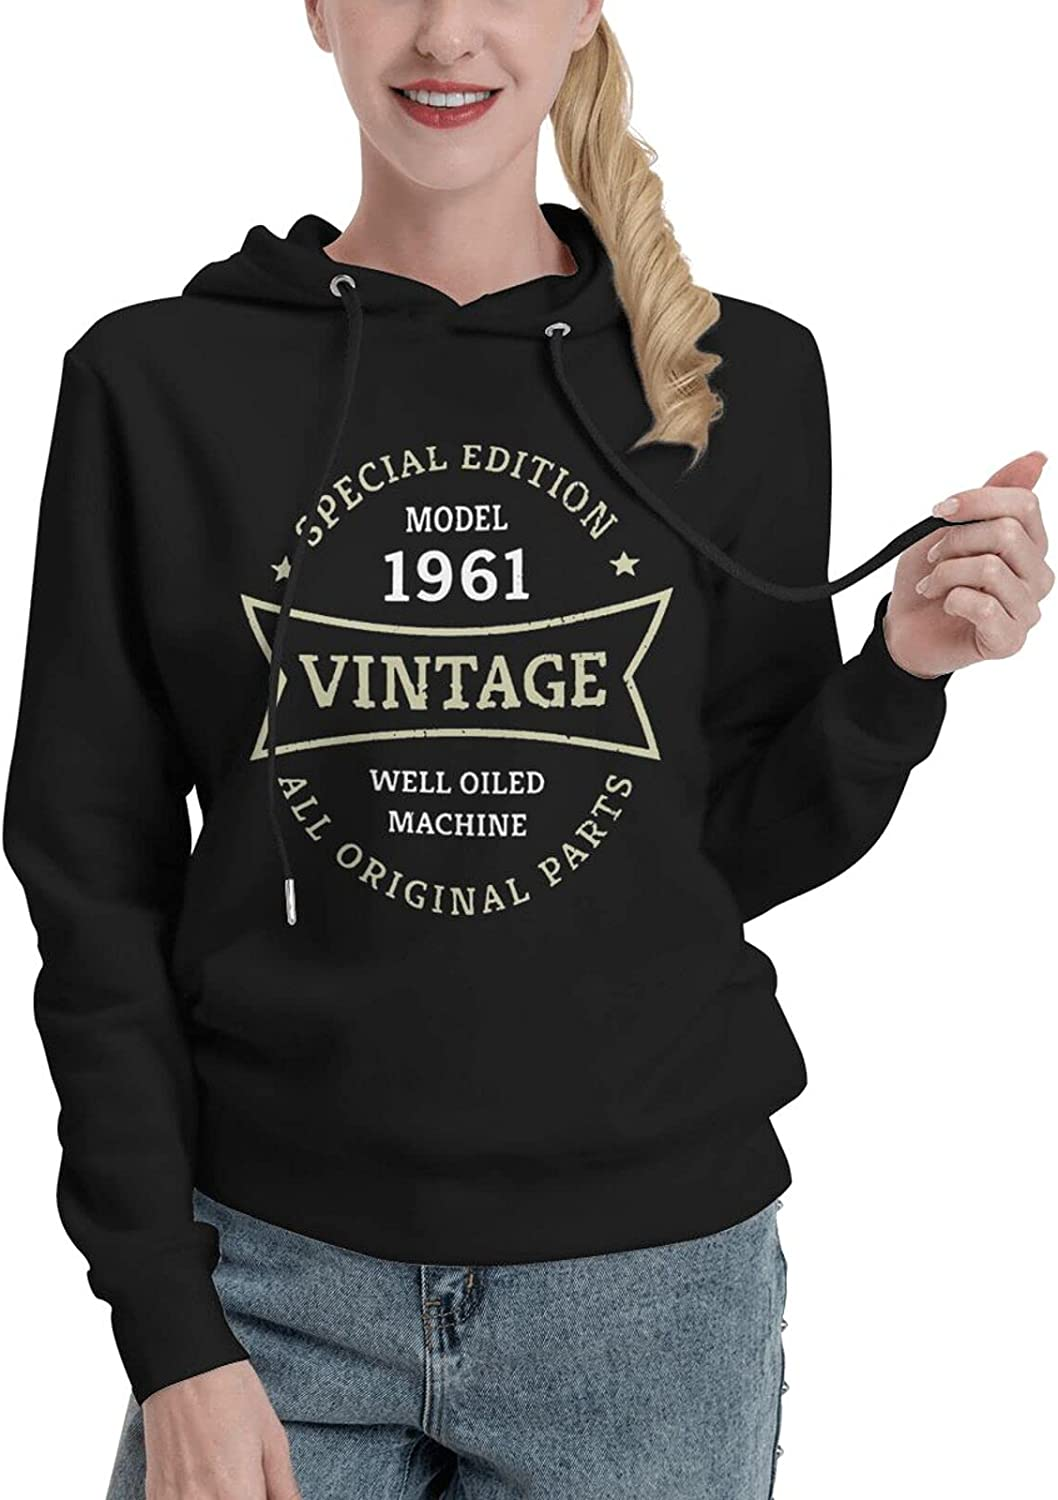 60 Year Old Birthday Gifts At the price Vintage Sweat Birth 1961 60th Women'S Max 49% OFF